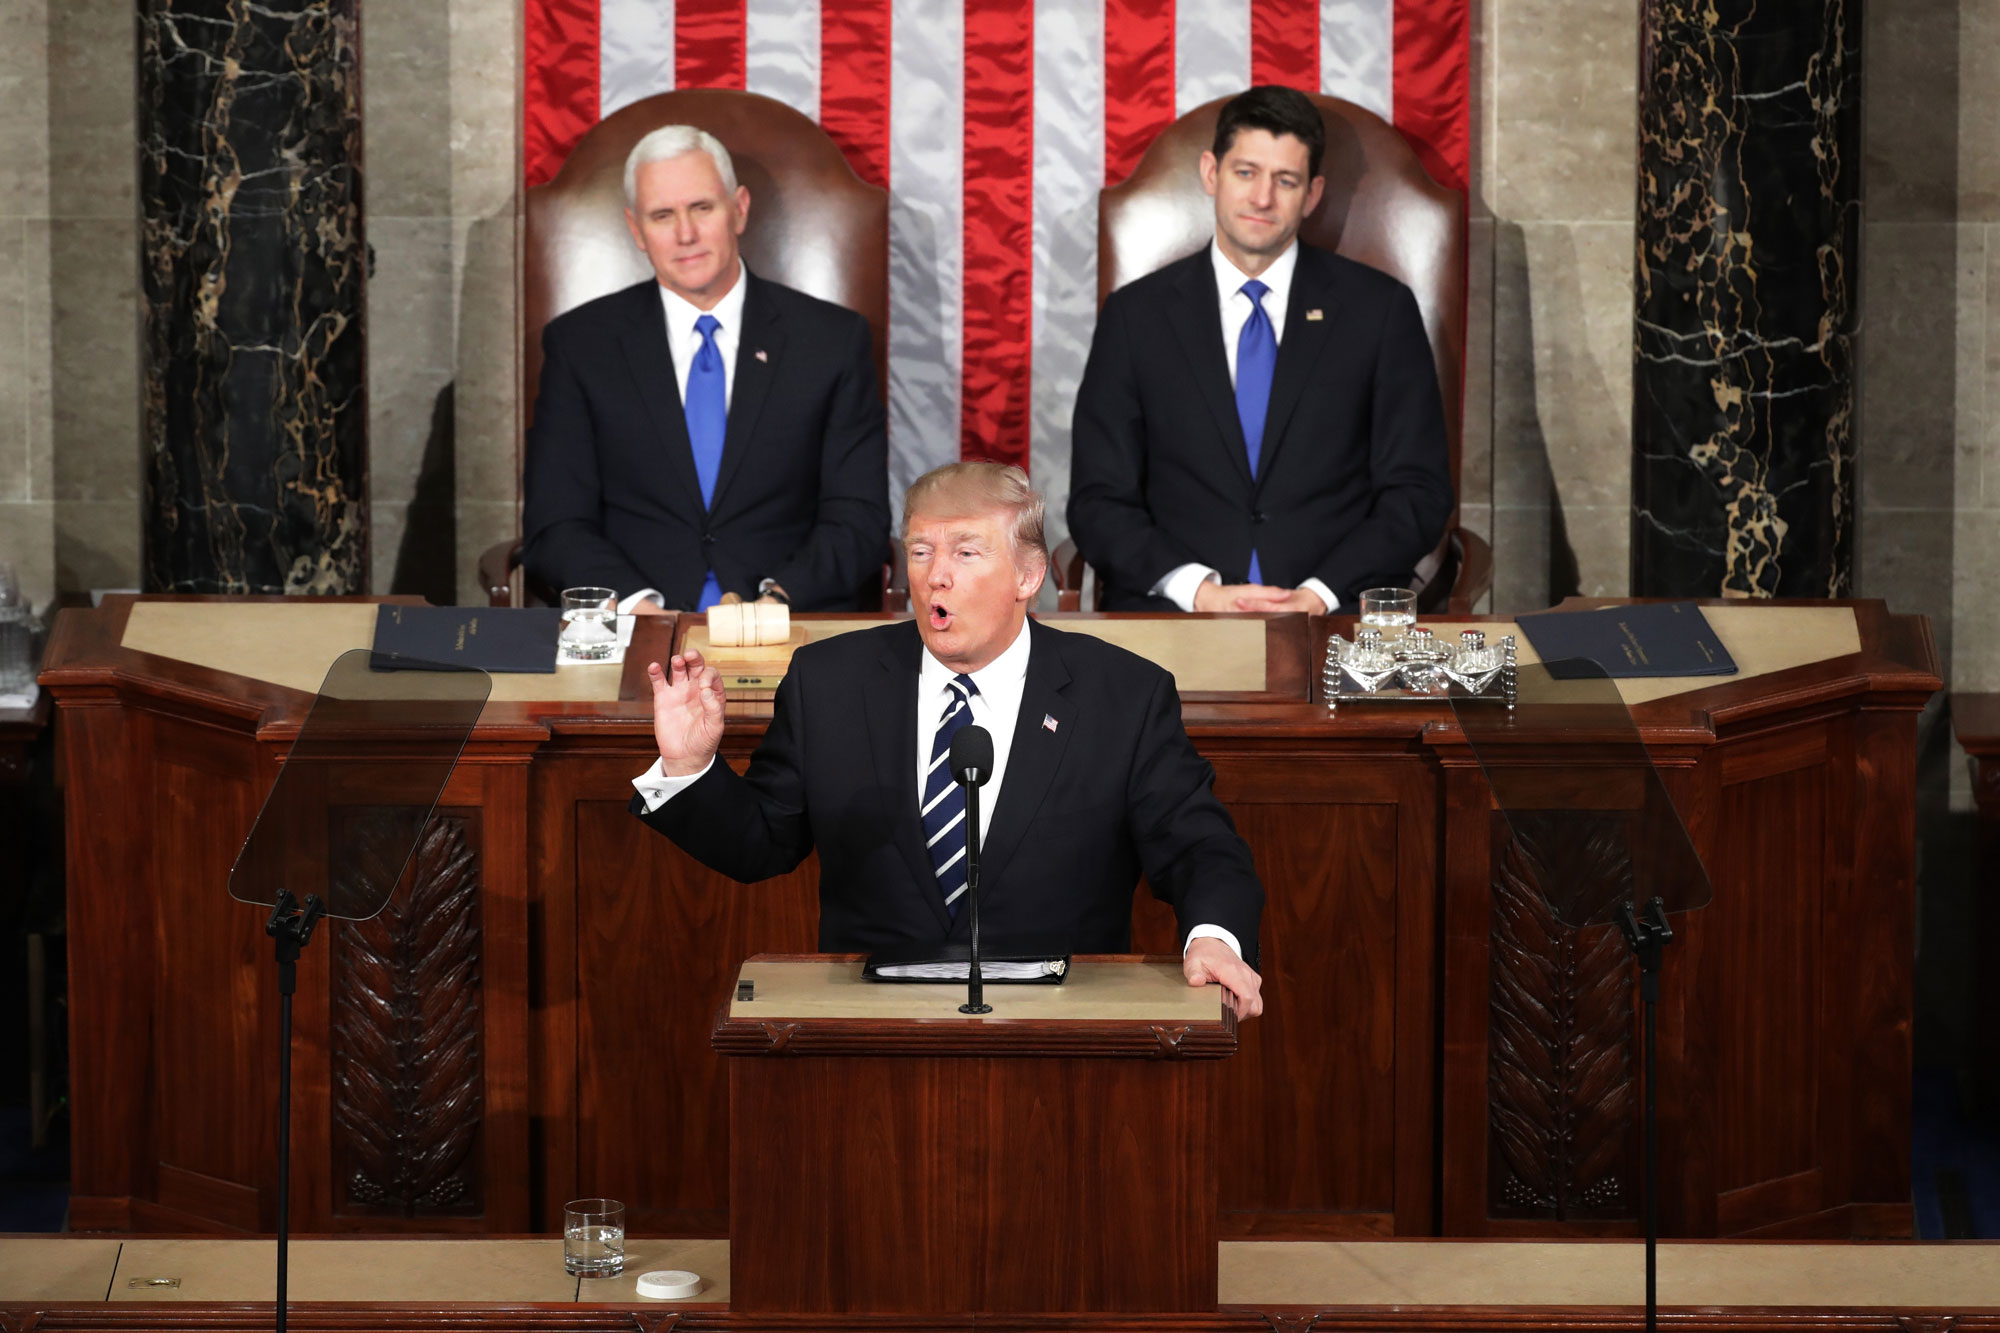 President Donald Trump addresses Congress last month.